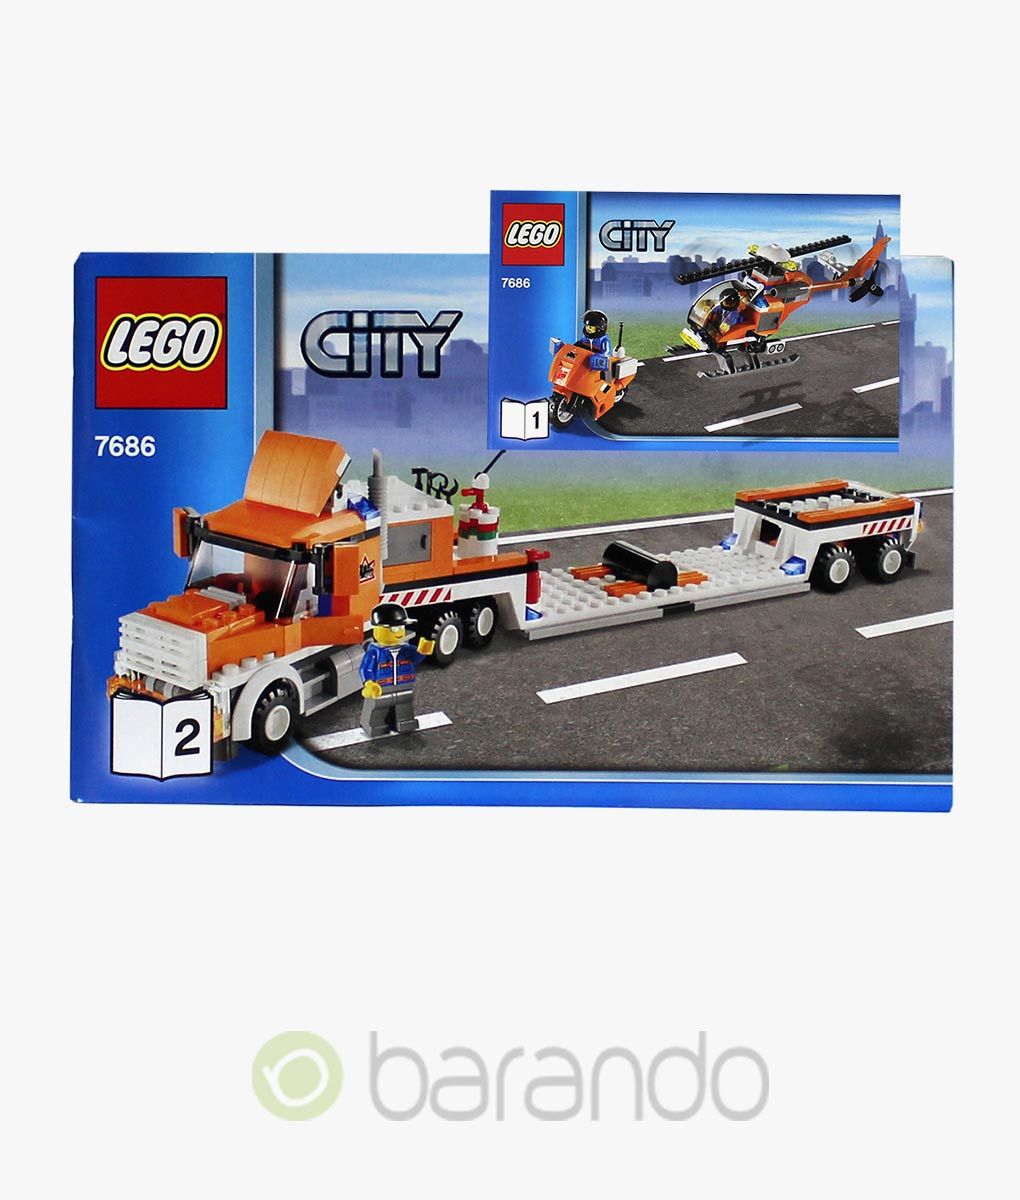 LEGO City 7686 Helikopter Transporter Set kaufen